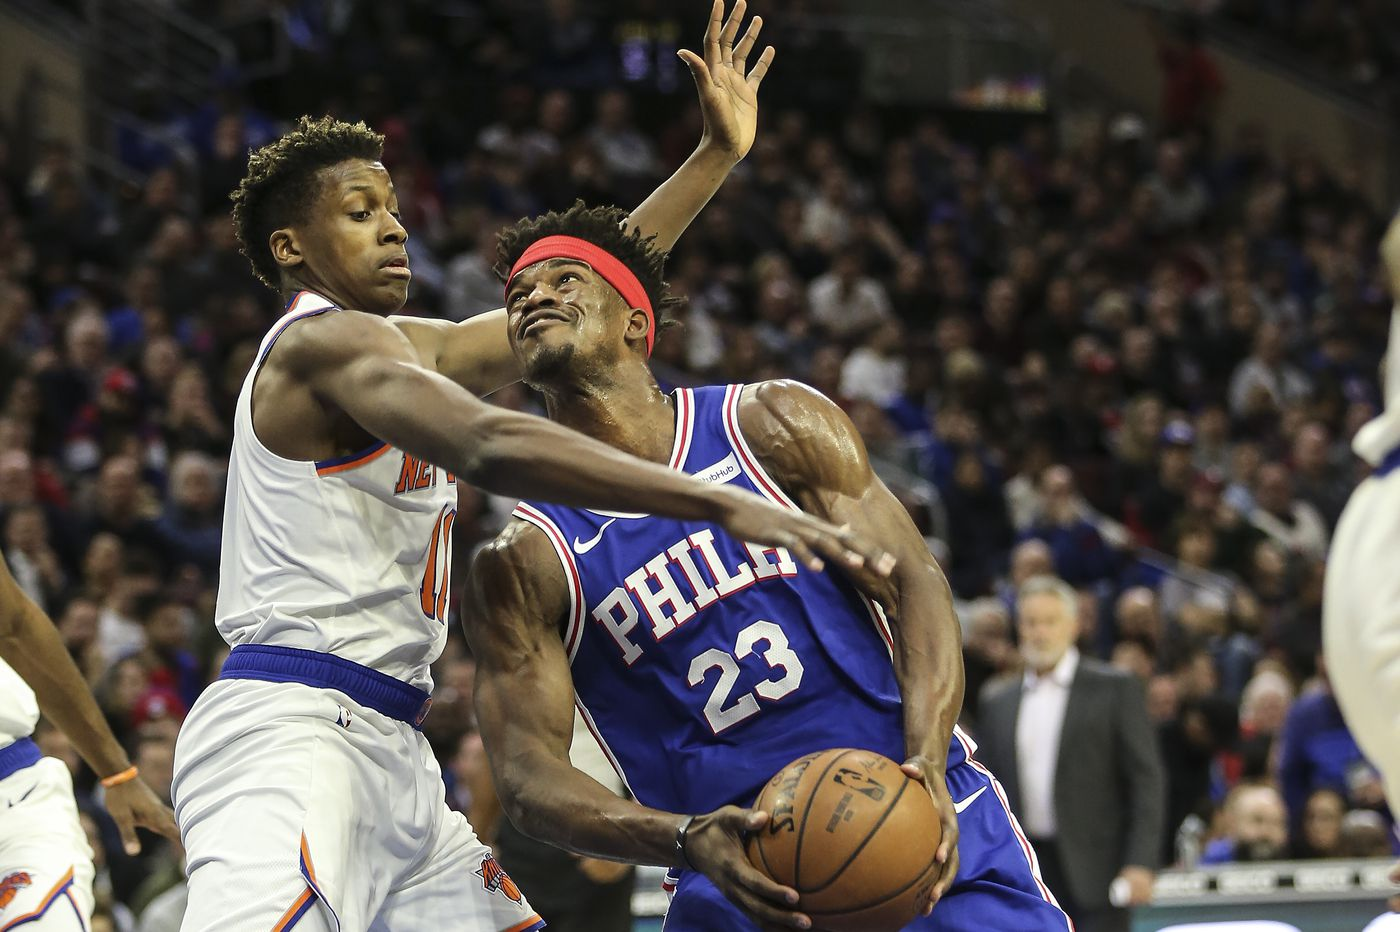 Sixers light up the Knicks again as Joel Embiid and Jimmy Butler show the way